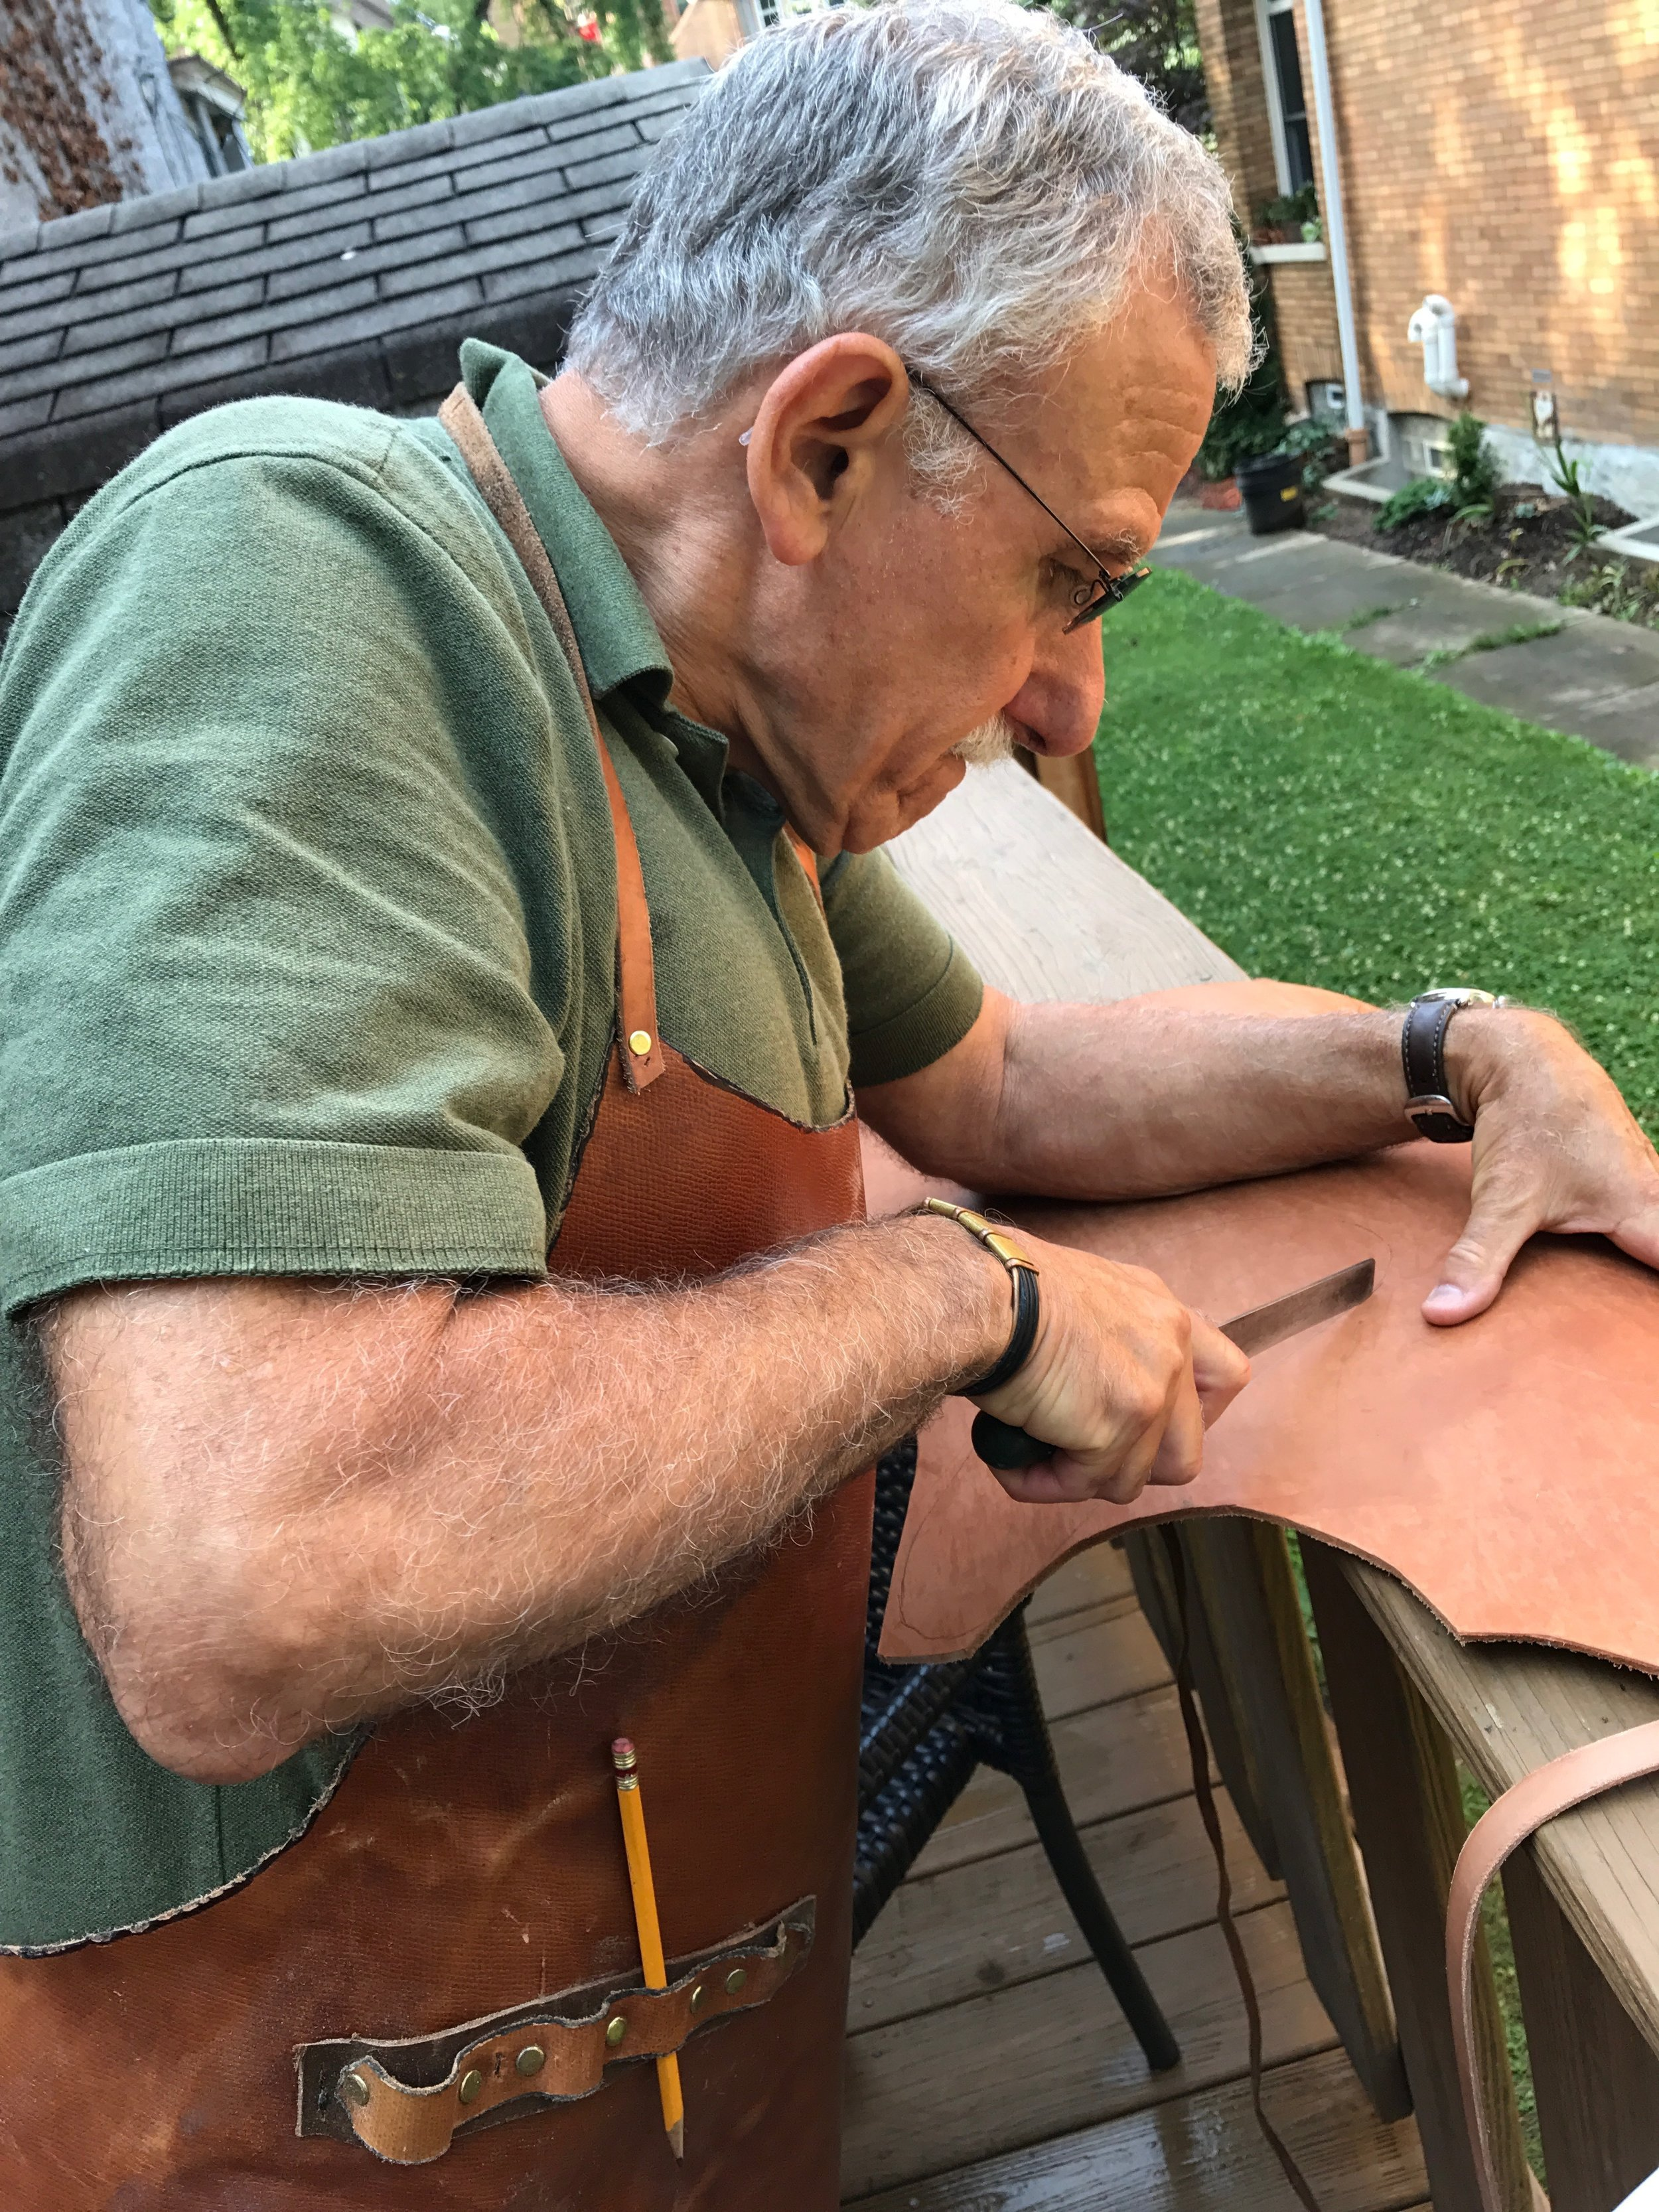 Eddie cutting out the soles of my sandals. That apron...